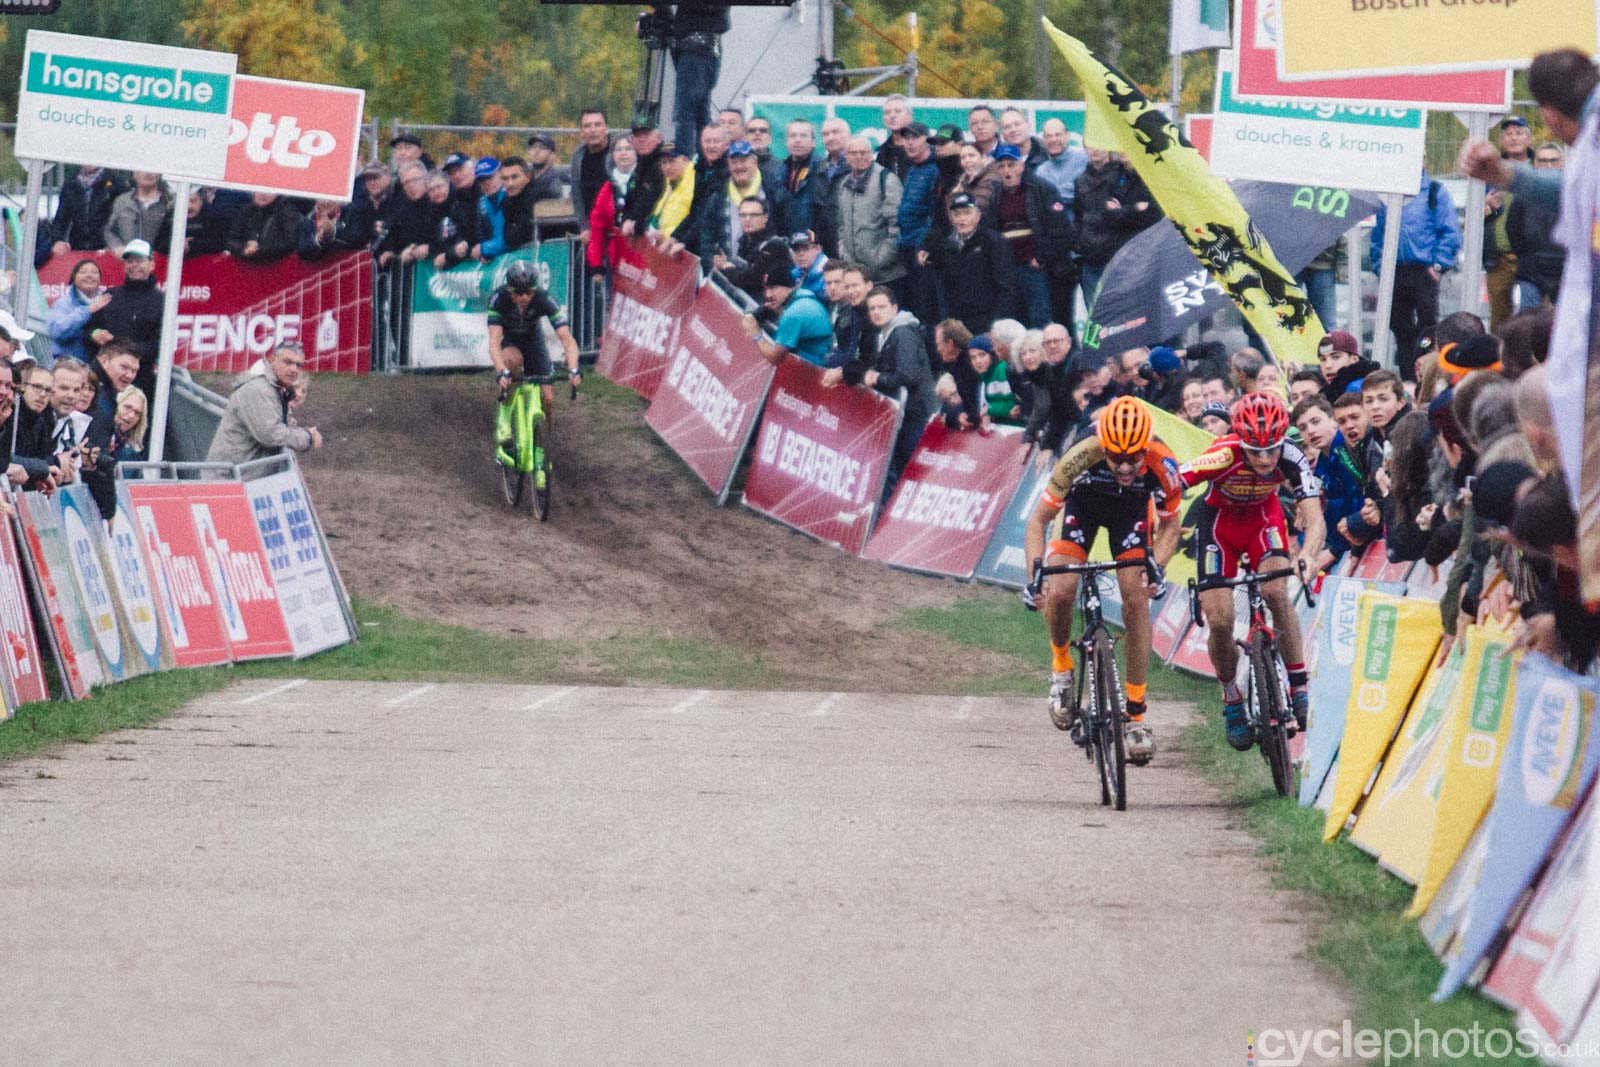 2015-cyclephotos-cyclocross-zonhoven-170218-rob-peeters